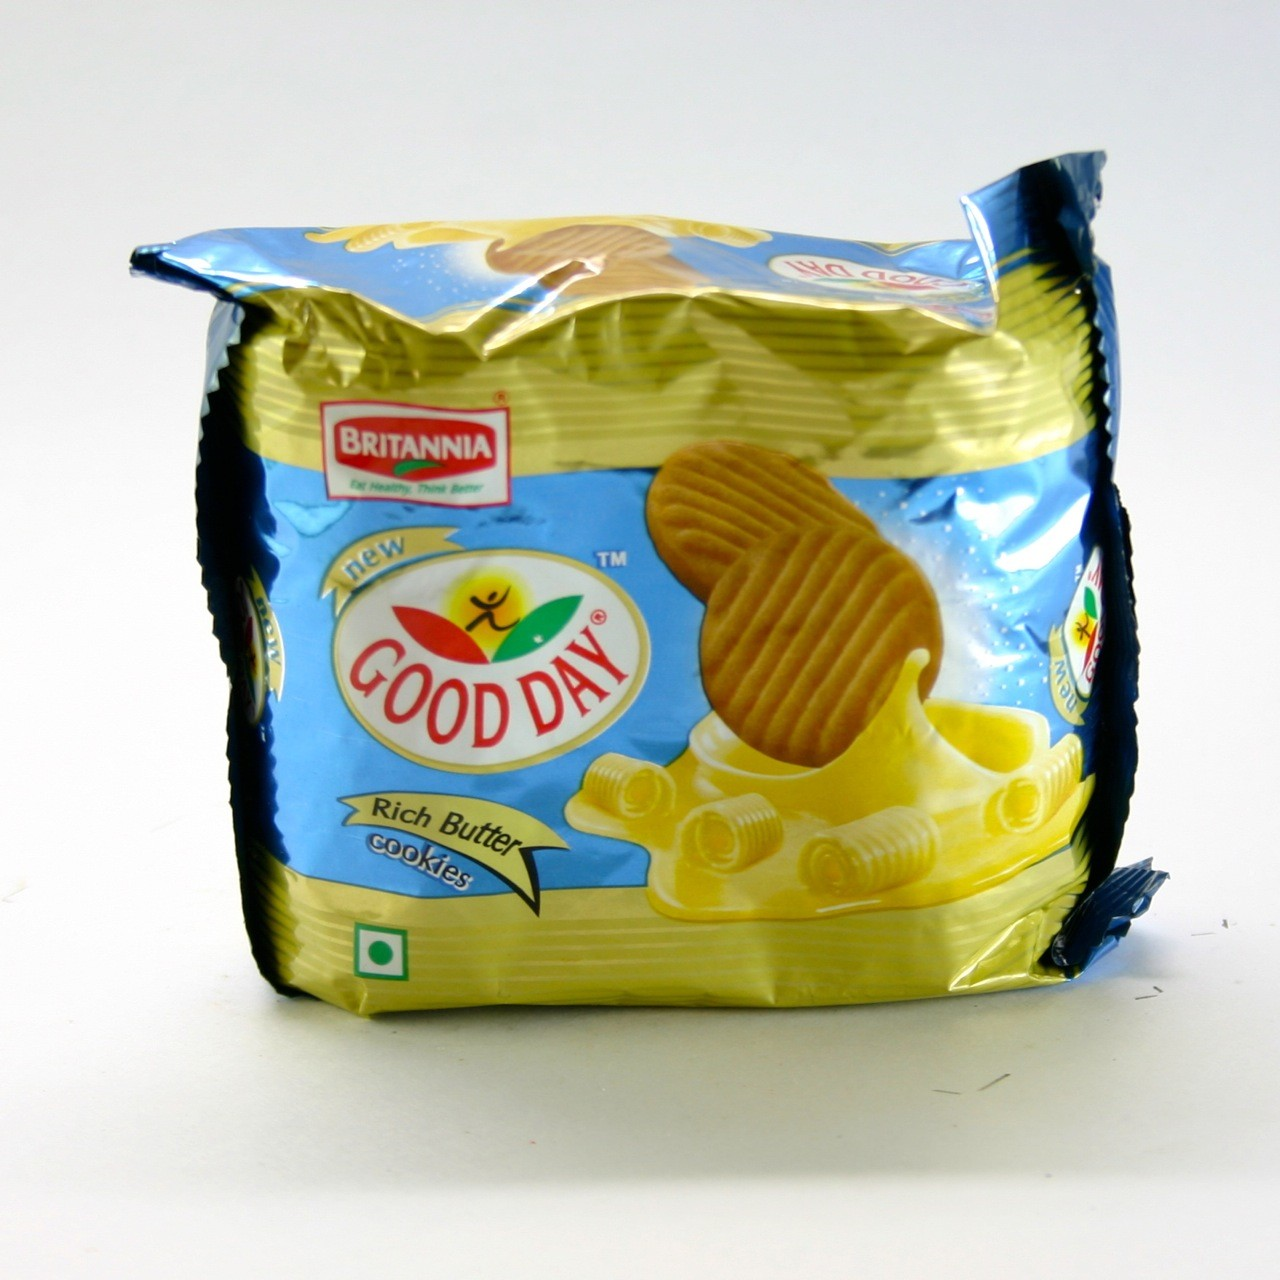 Britannia Good Day Cookies - Rich Butter